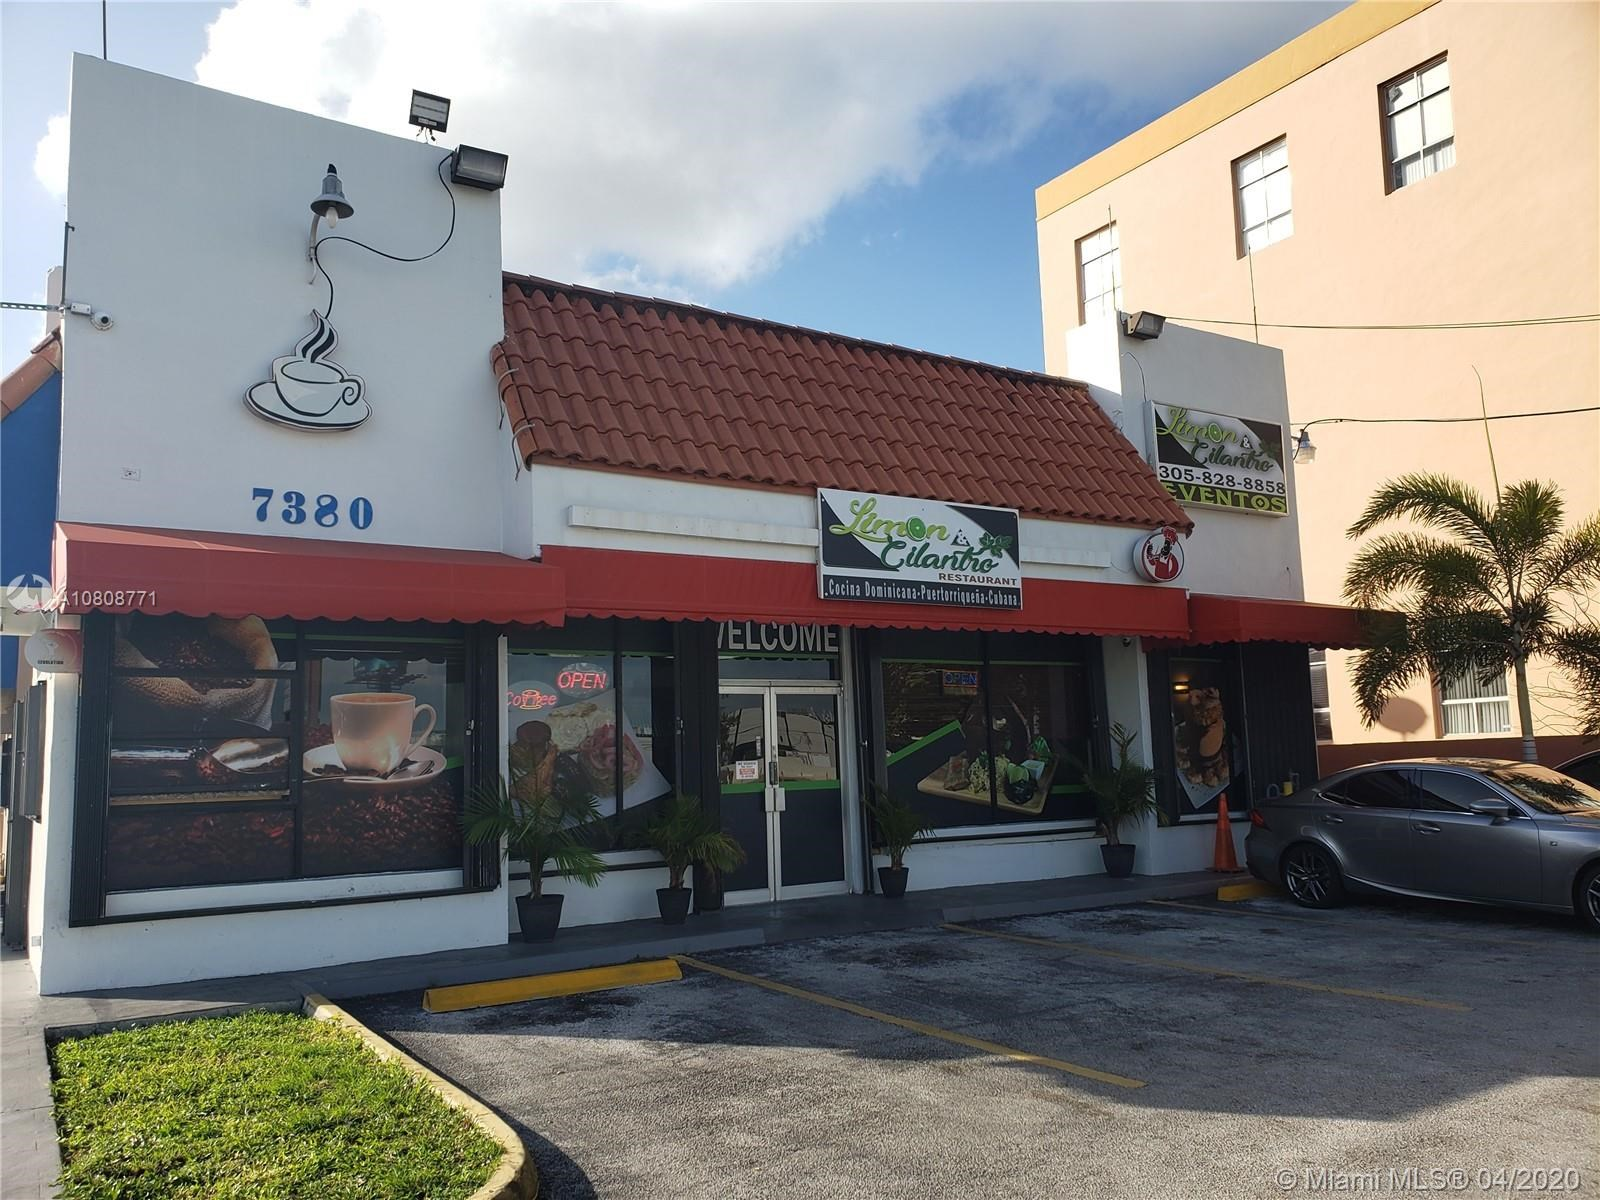 7 W W 20th Av, Hialeah, FL 33016